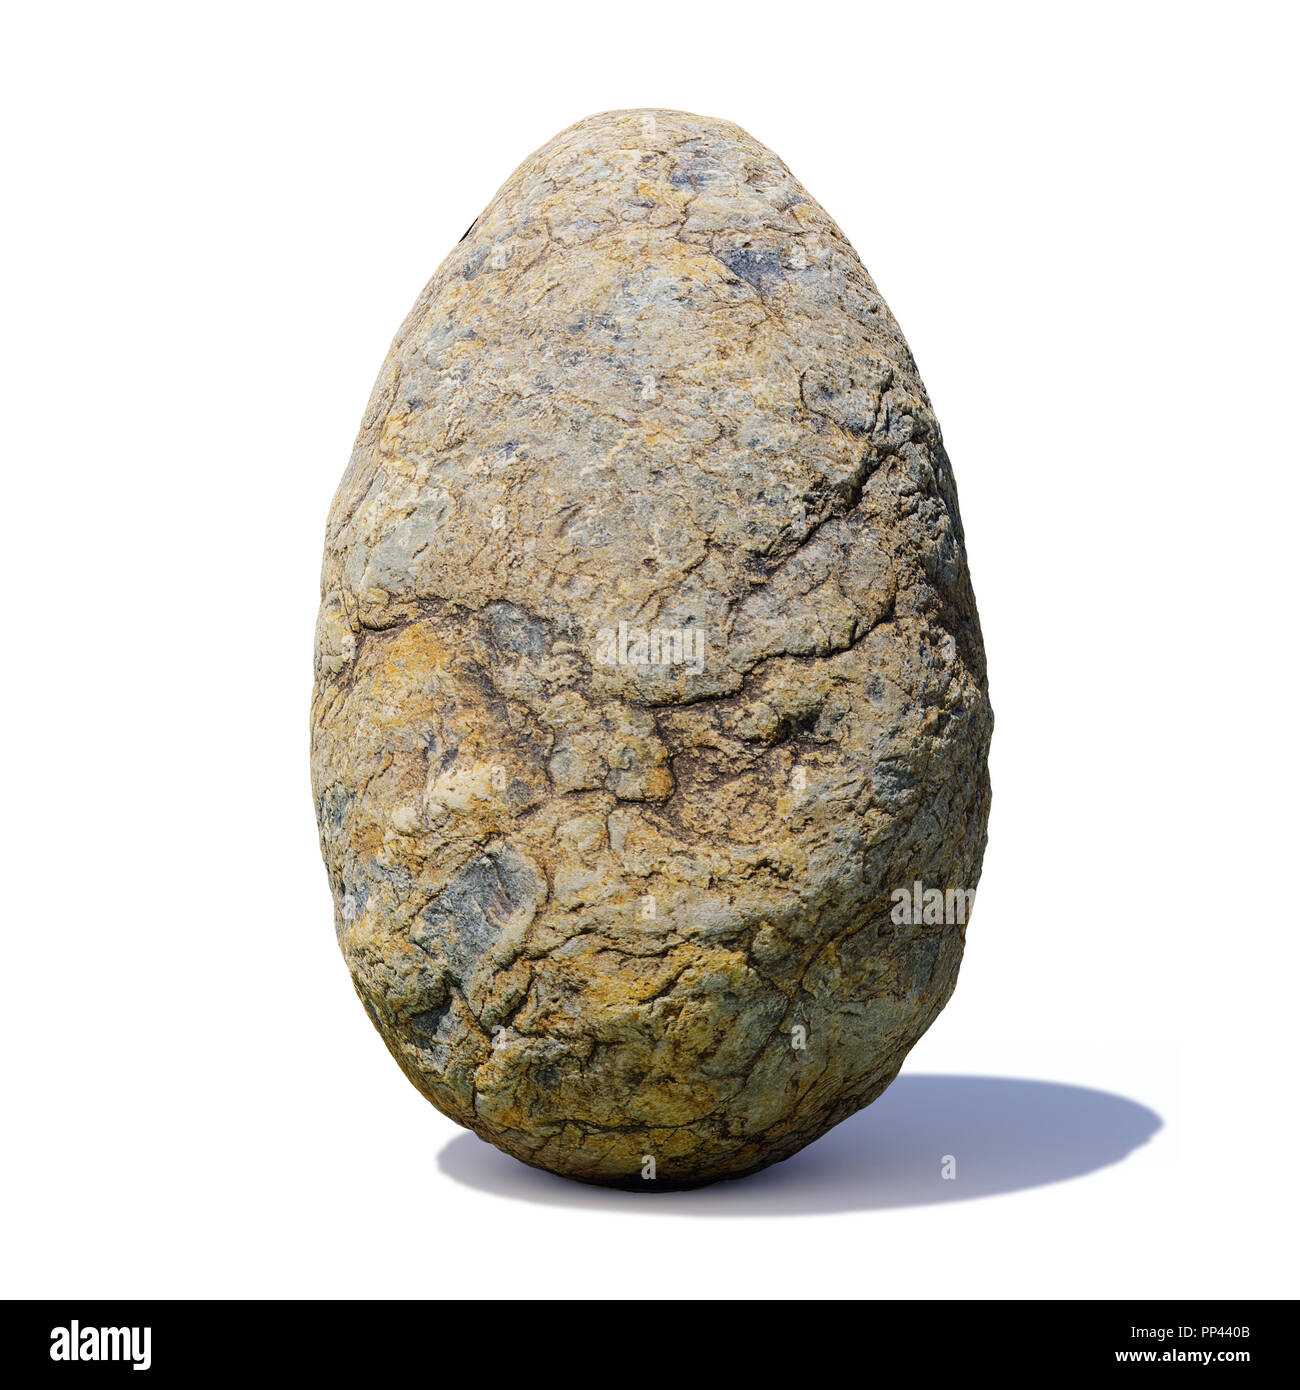 dinosaur egg, ancient stone dino egg isolated with shadow on white background - Stock Image